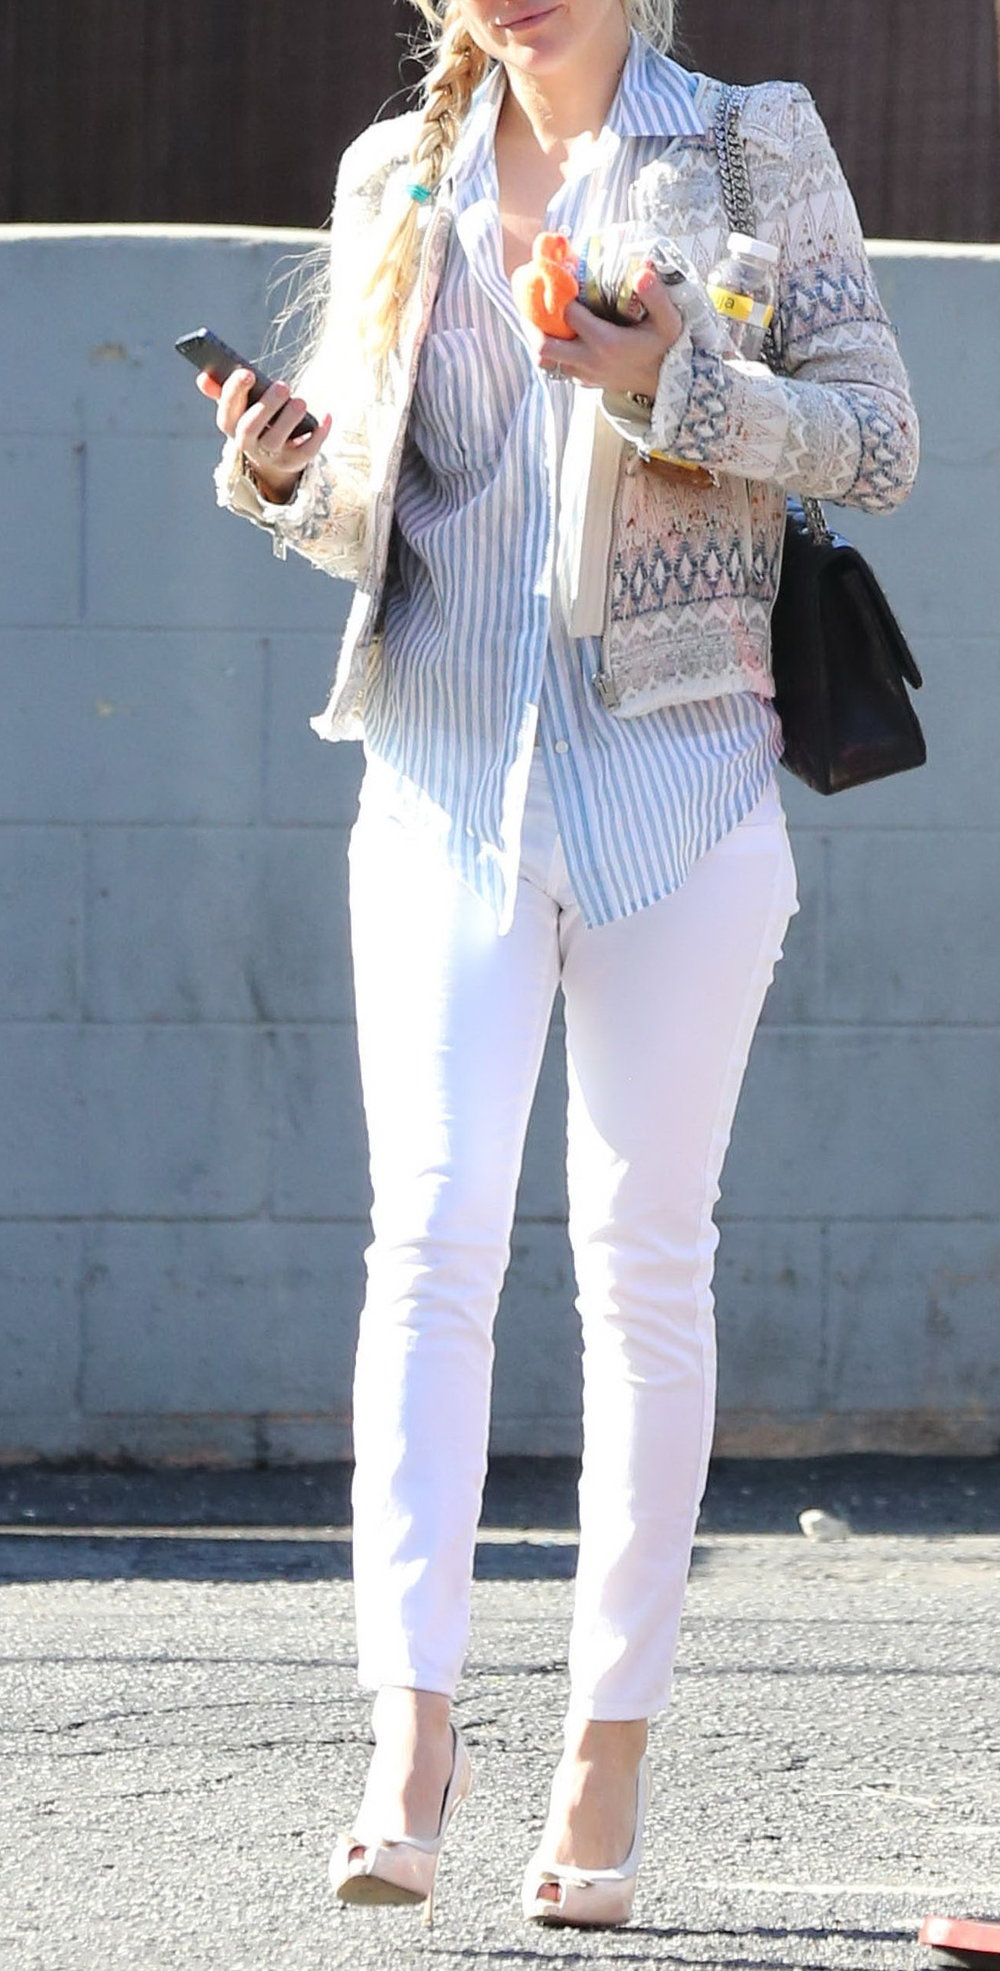 Hudson leaving Lee's Nail Salon after getting a manicure in West Hollywood, California